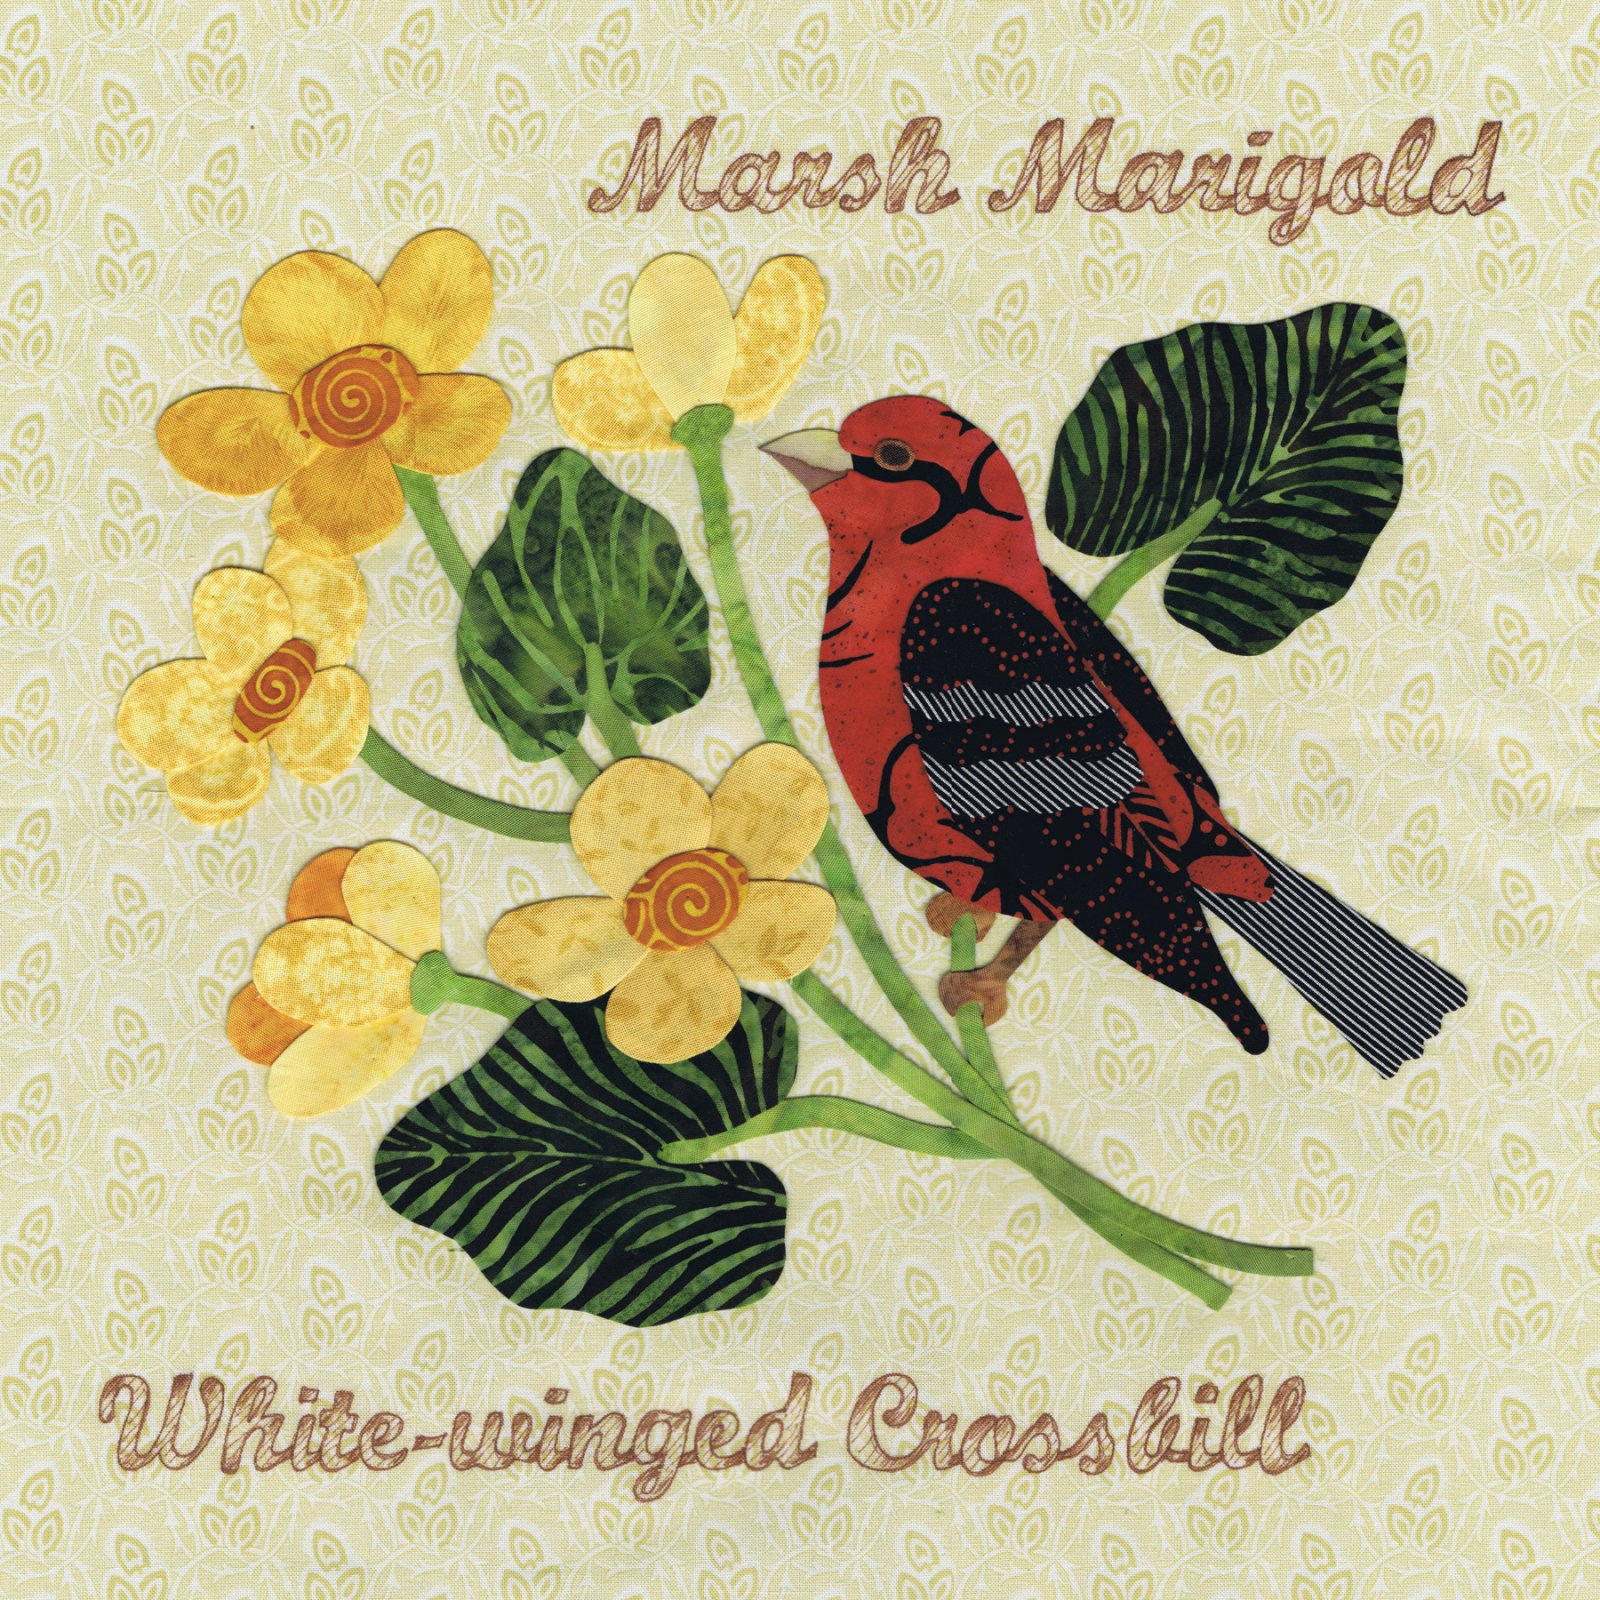 P3-1503 White-winged Crossbill & March Marigold